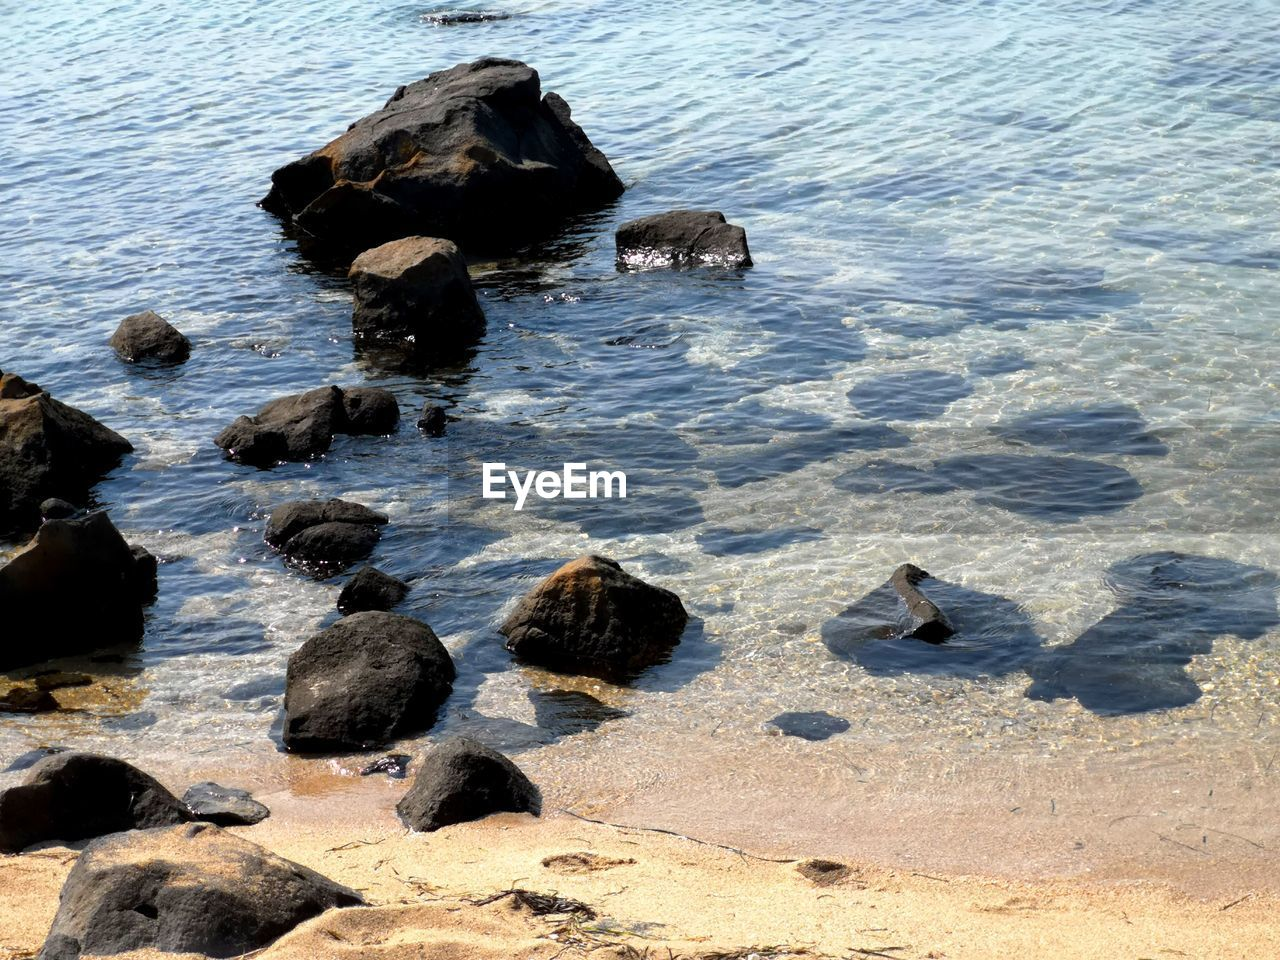 rock, water, rock - object, solid, high angle view, animal wildlife, group of animals, nature, no people, animals in the wild, day, beach, sea, vertebrate, animal, animal themes, land, bird, beauty in nature, outdoors, pebble